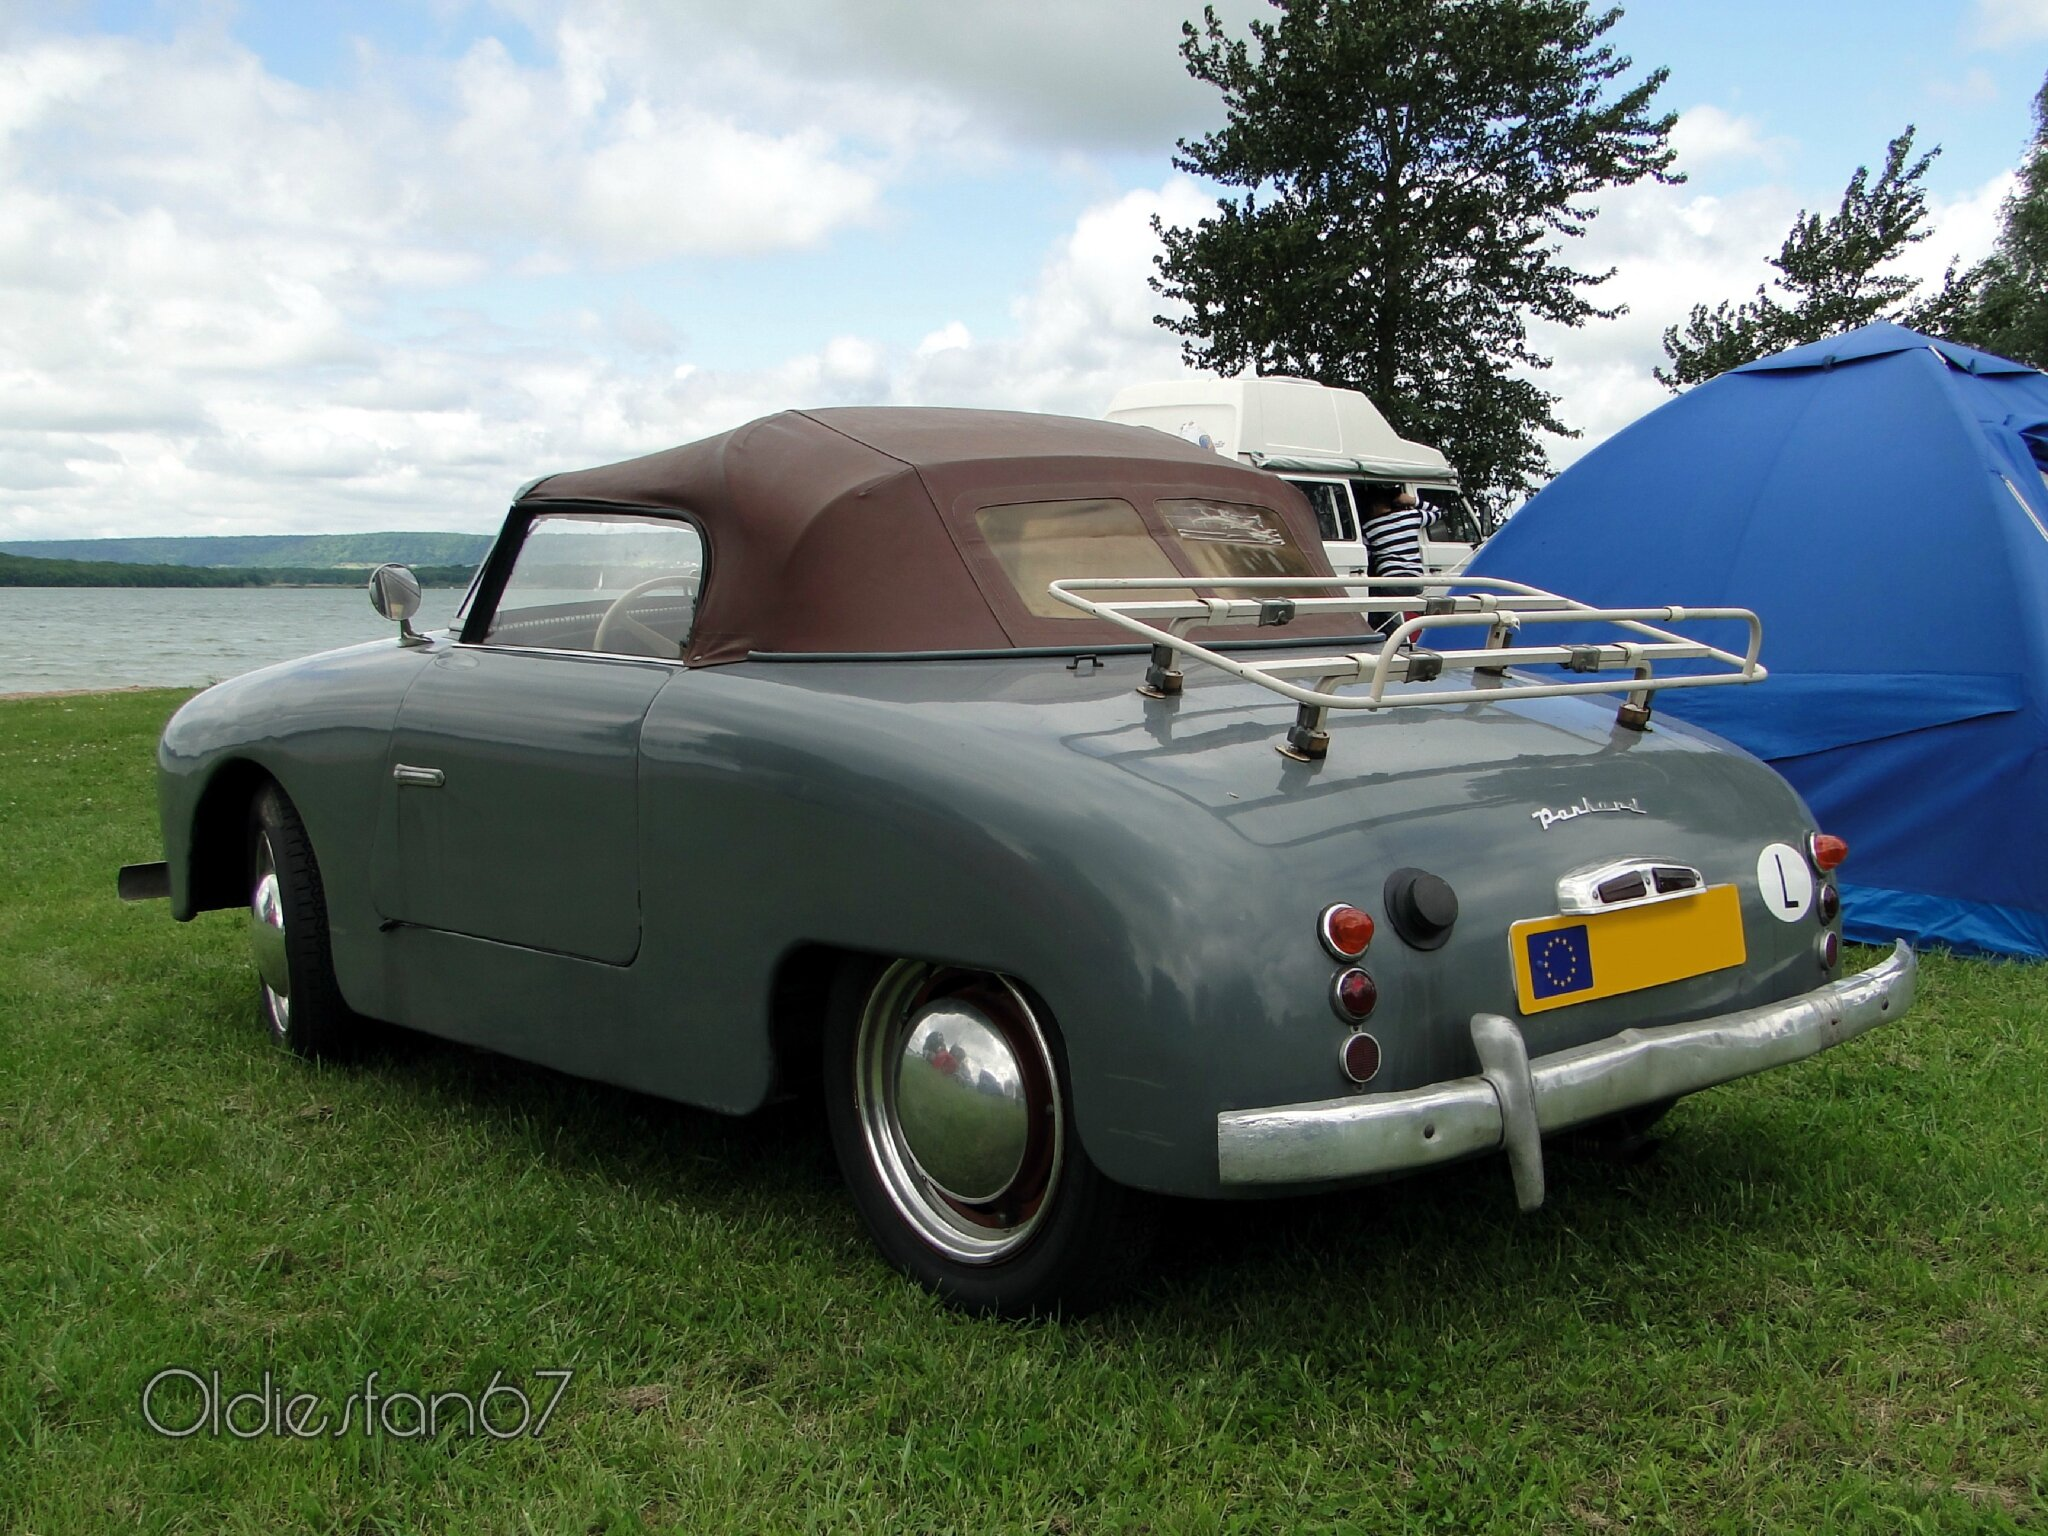 panhard dyna junior 1952 1956 oldiesfan67 mon blog auto. Black Bedroom Furniture Sets. Home Design Ideas